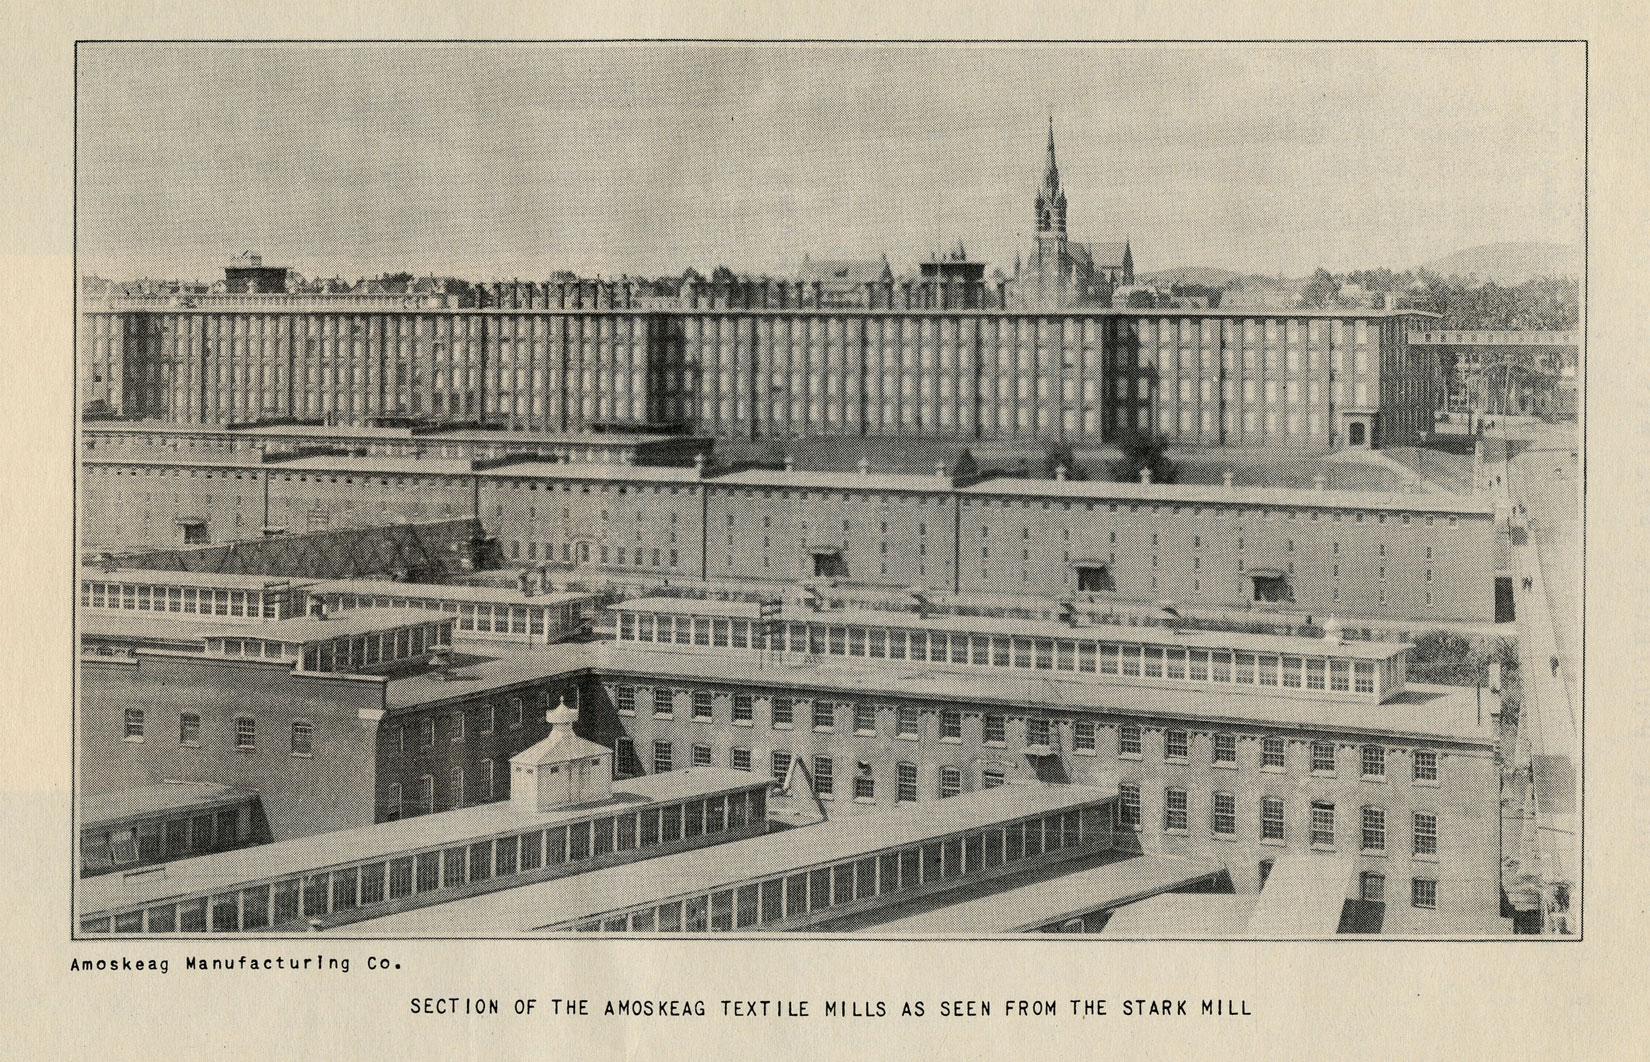 A black and white photograph shows many mill buildings from a high perspective. In the foreground, they run horizontally and vertically, and in the background there is one long factory building. Behind and on the sides of the buildings, the surrounding town can be seen. The caption reads